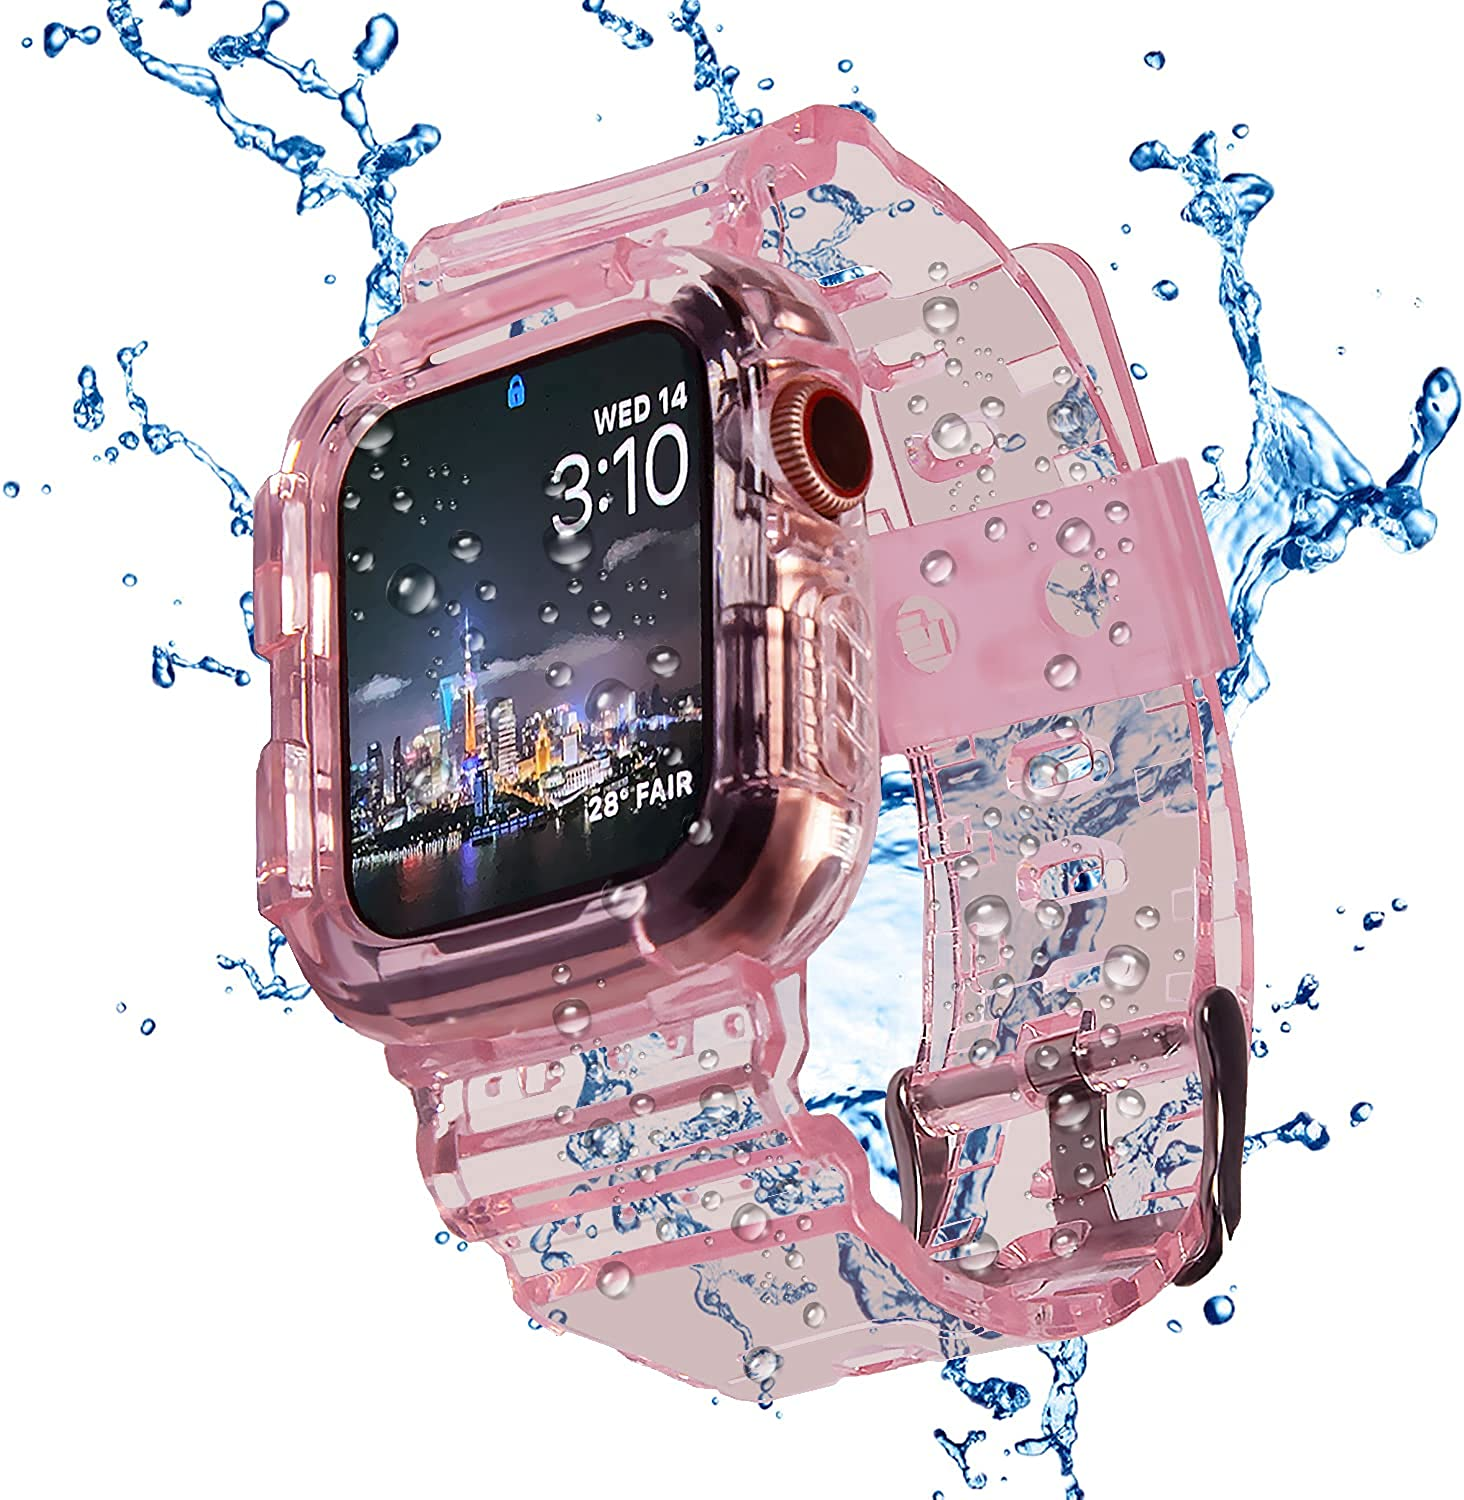 Blingbrione Case With Band Compatible For Apple Watch 38mm/40mm,Waterproof Shockproof Impact Resistant Rugged Protective Bumper Cover With TPU Silicon Soft Wristband For iphone Watch Series 6 5 4 3 2 1 SE.iwatch Sport Replacement Strap for Women Man